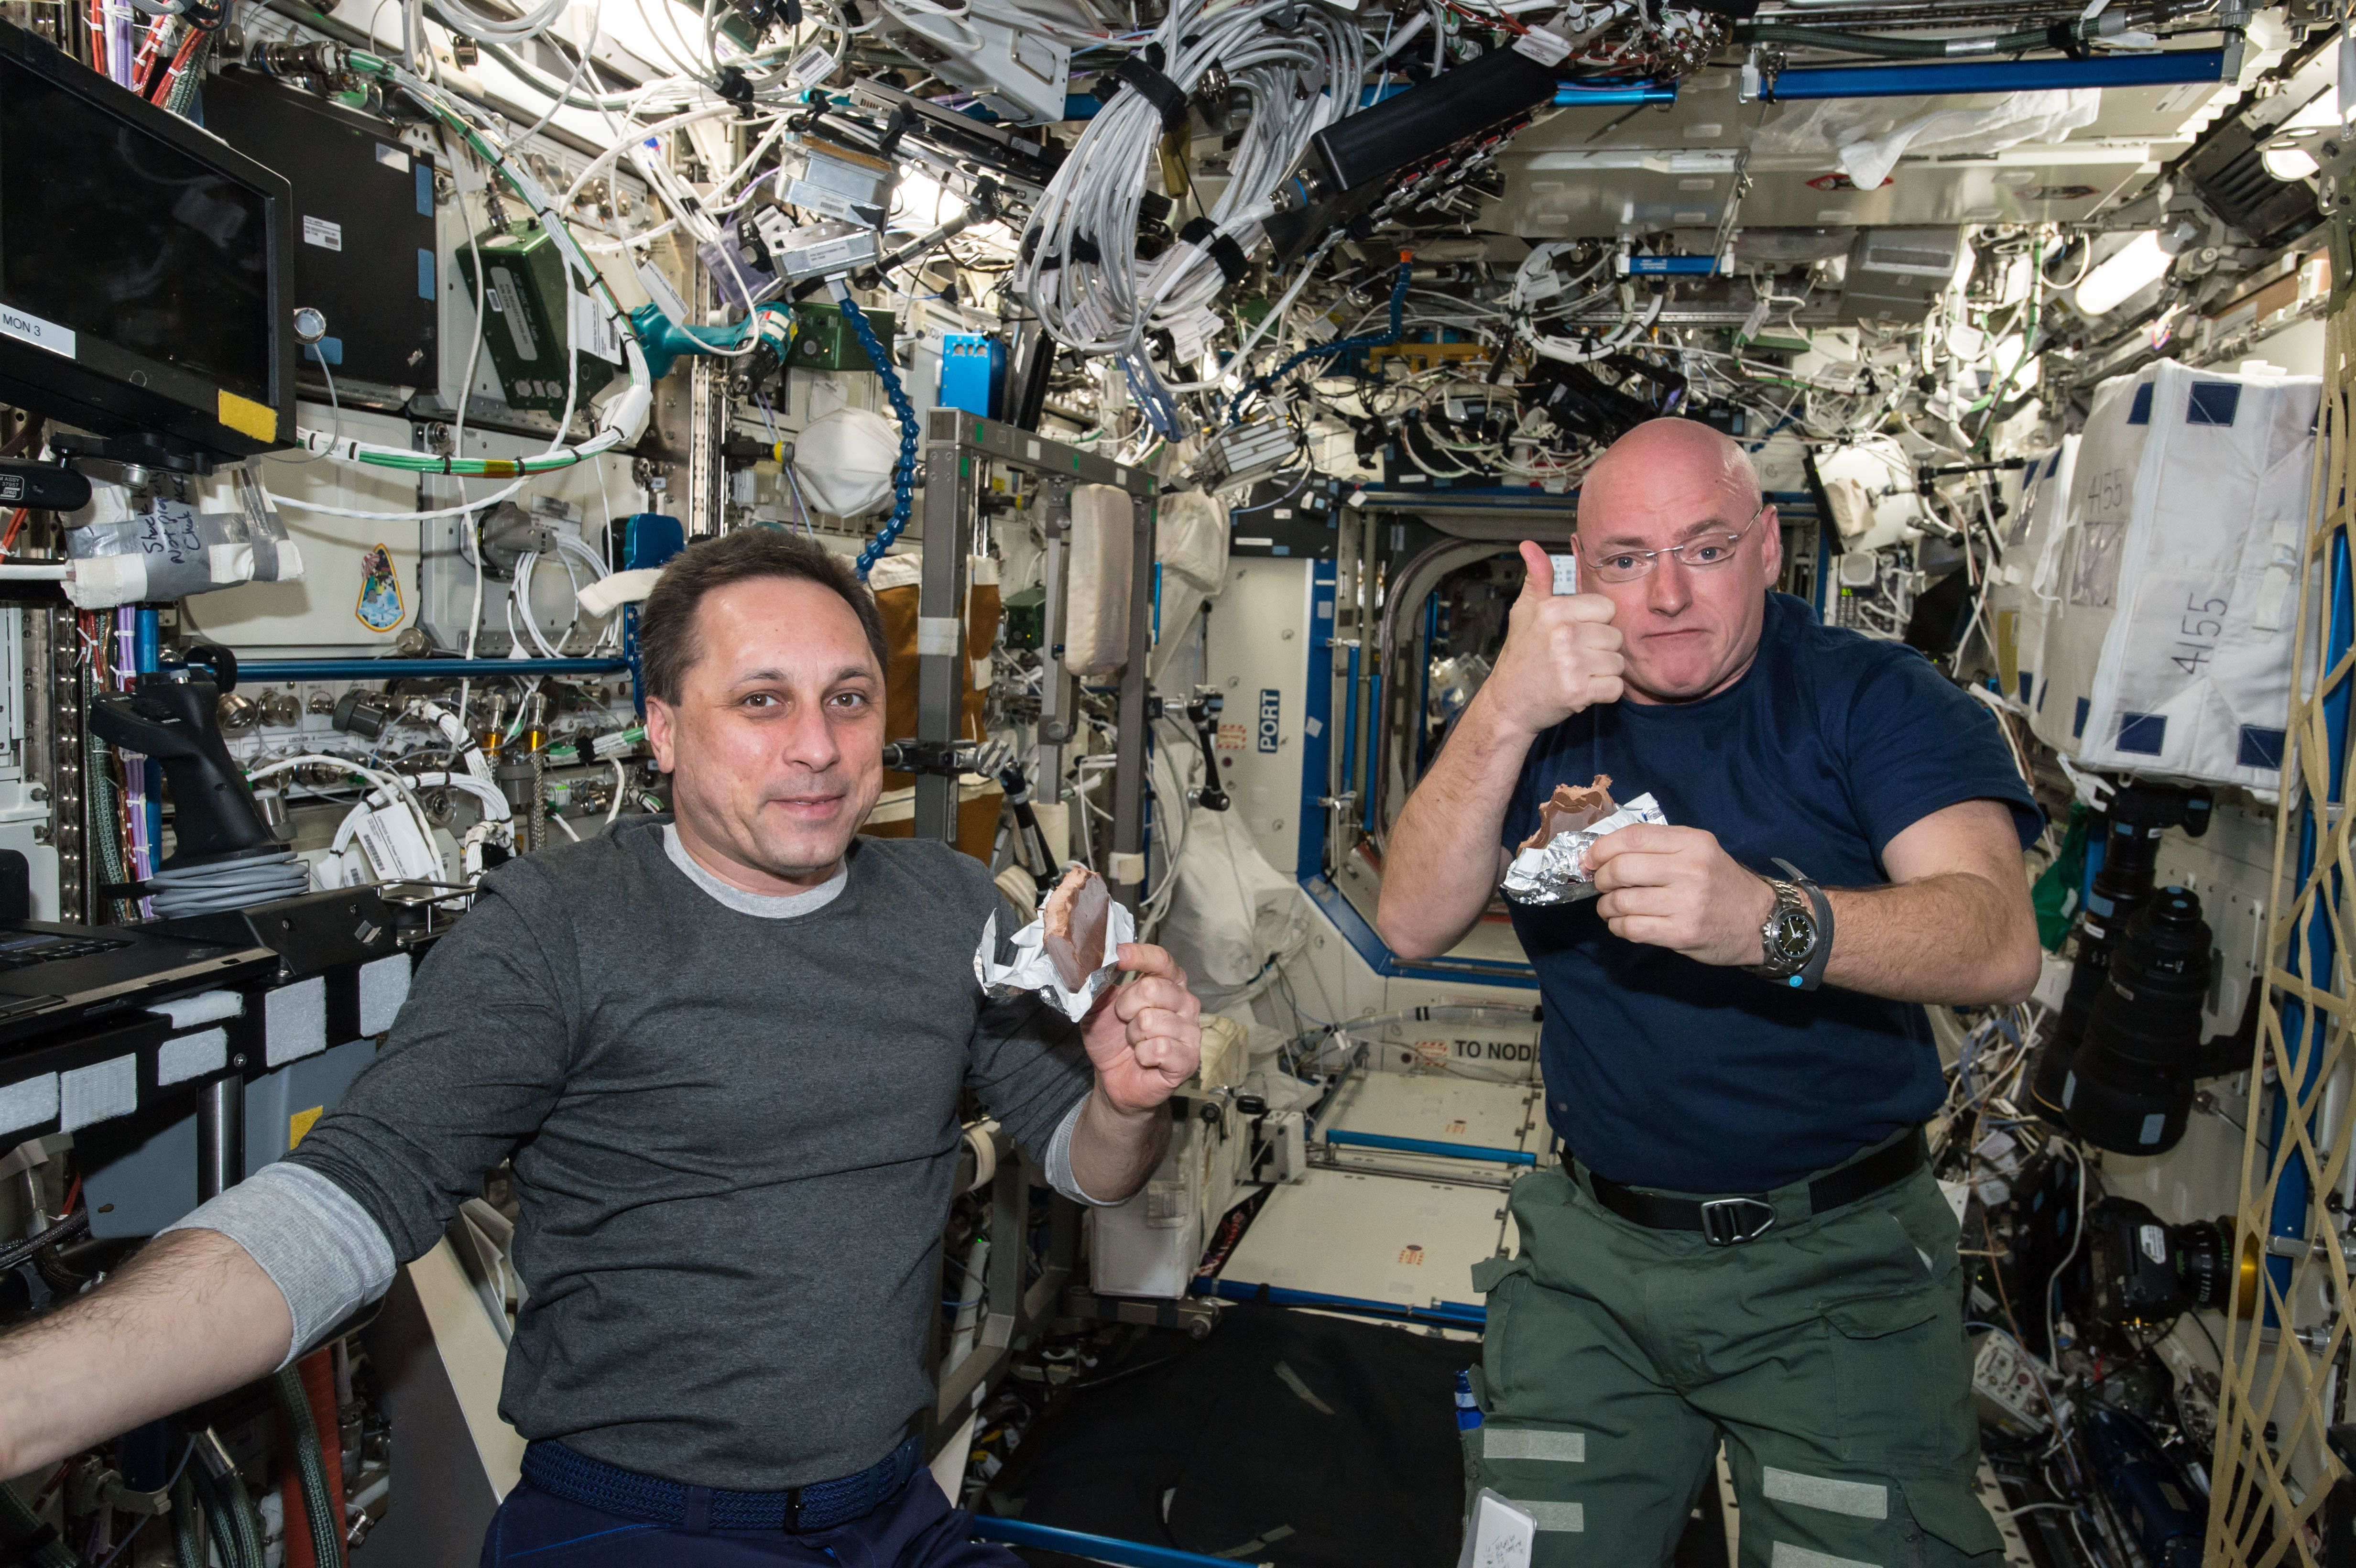 Astronauts Could Soon Be Eating Their Own